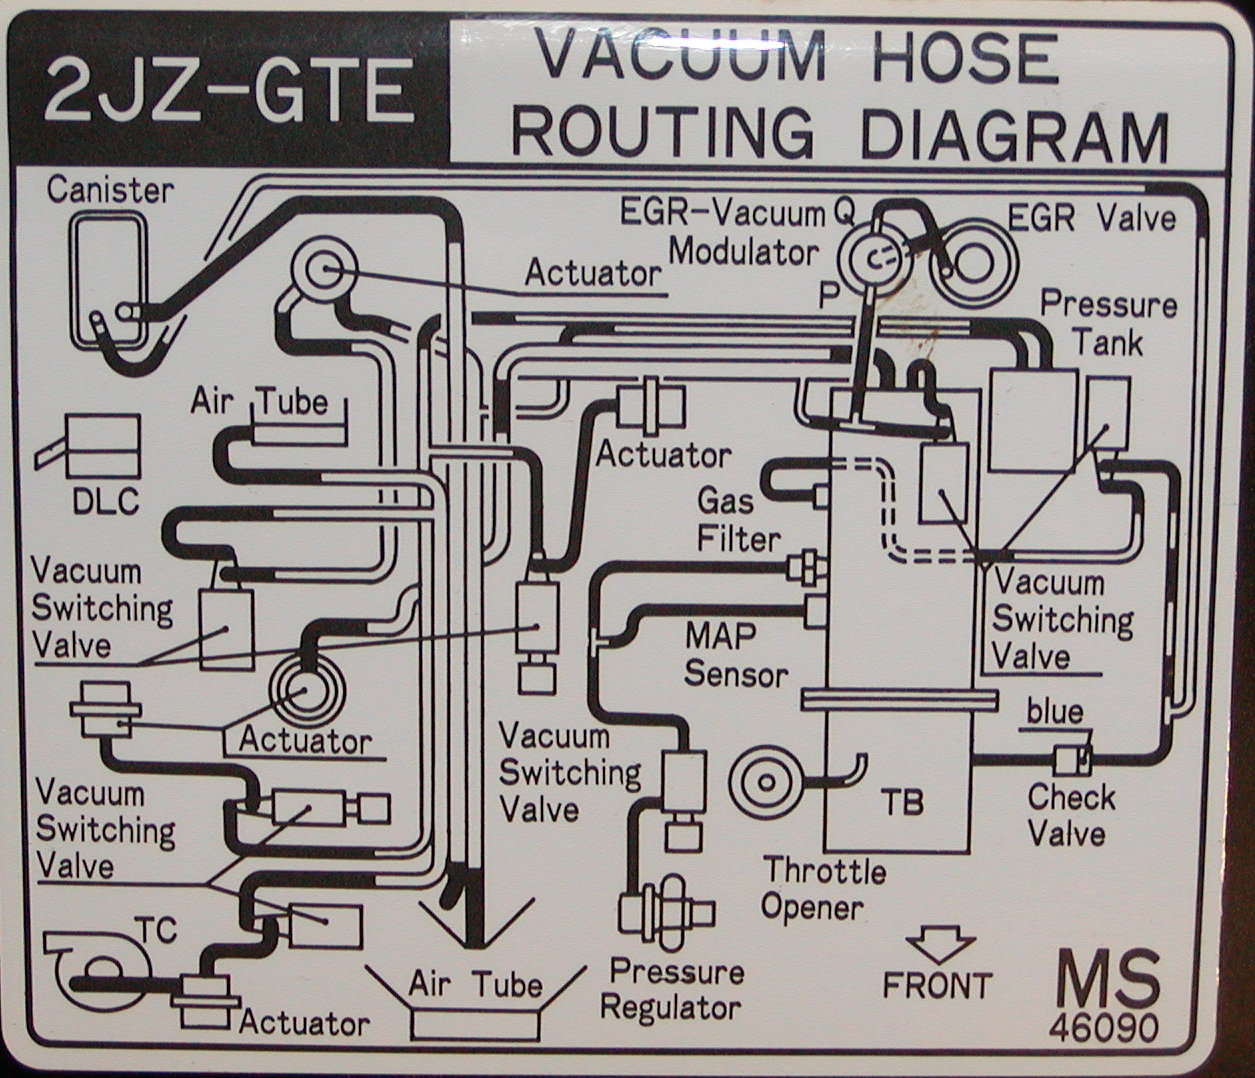 1997 engine vacuum tube routing schematic http97supraturbotech20stuffum20linesg pooptronica